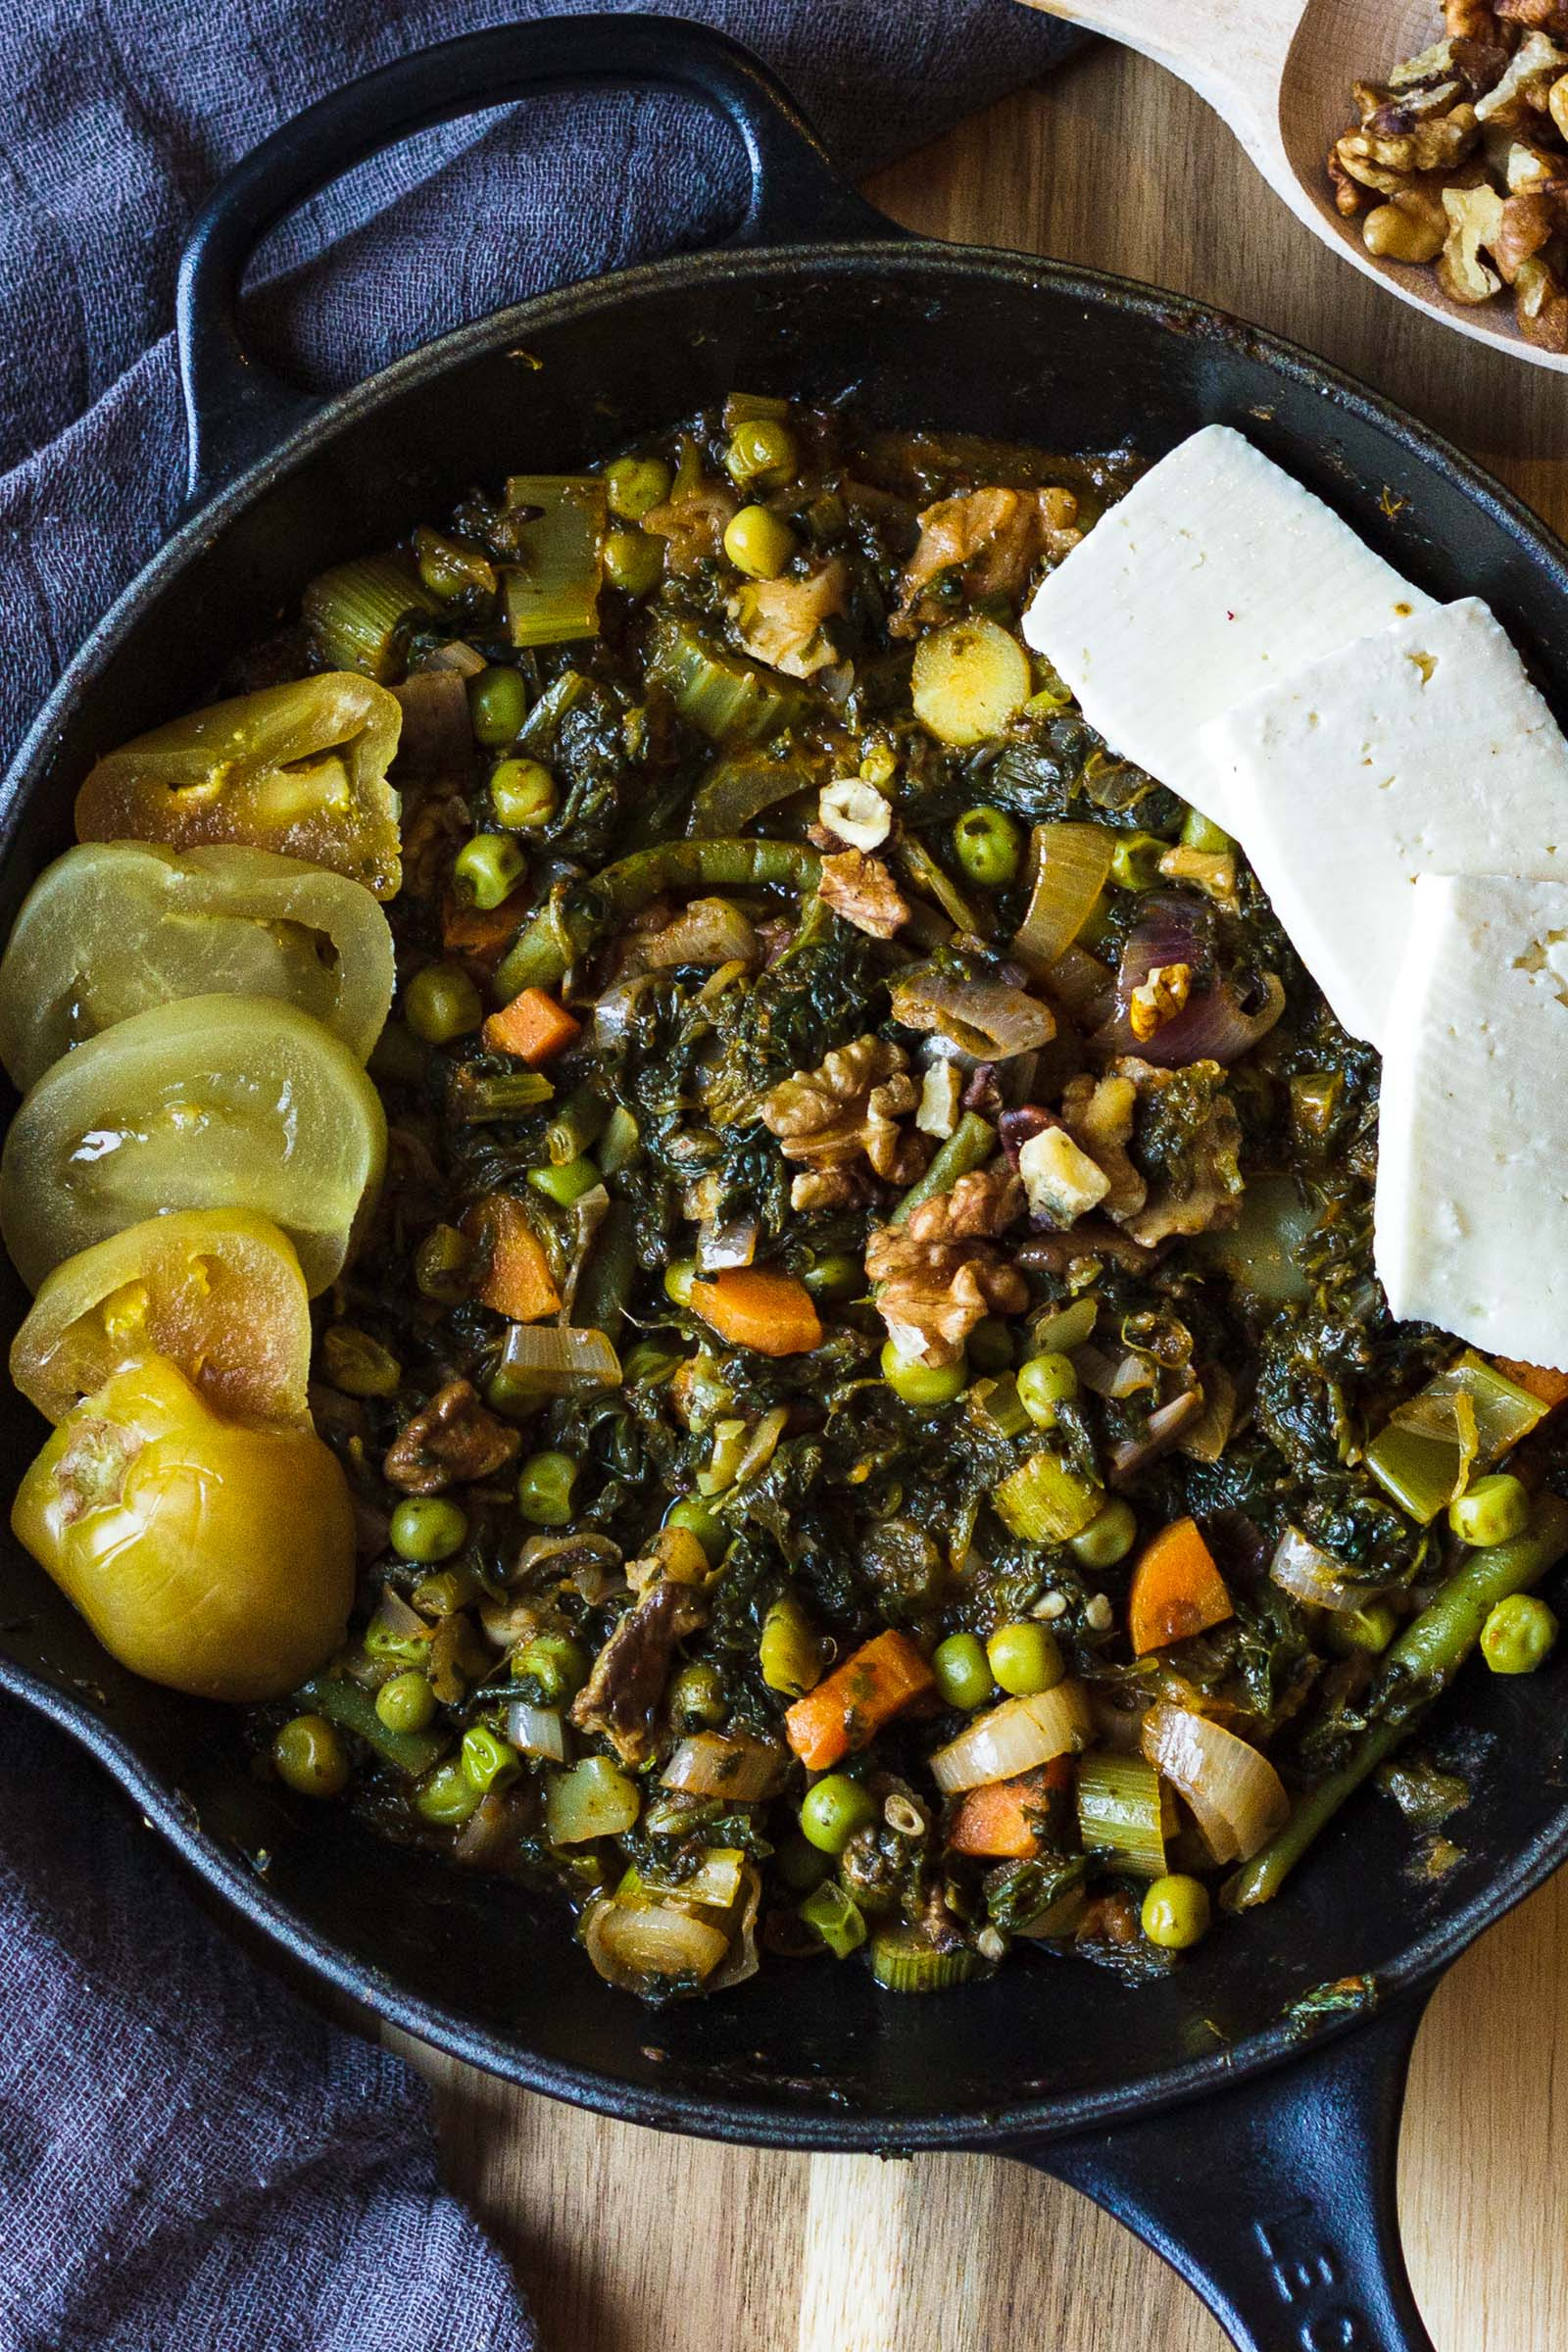 Skillet with cooked spinach and vegetables